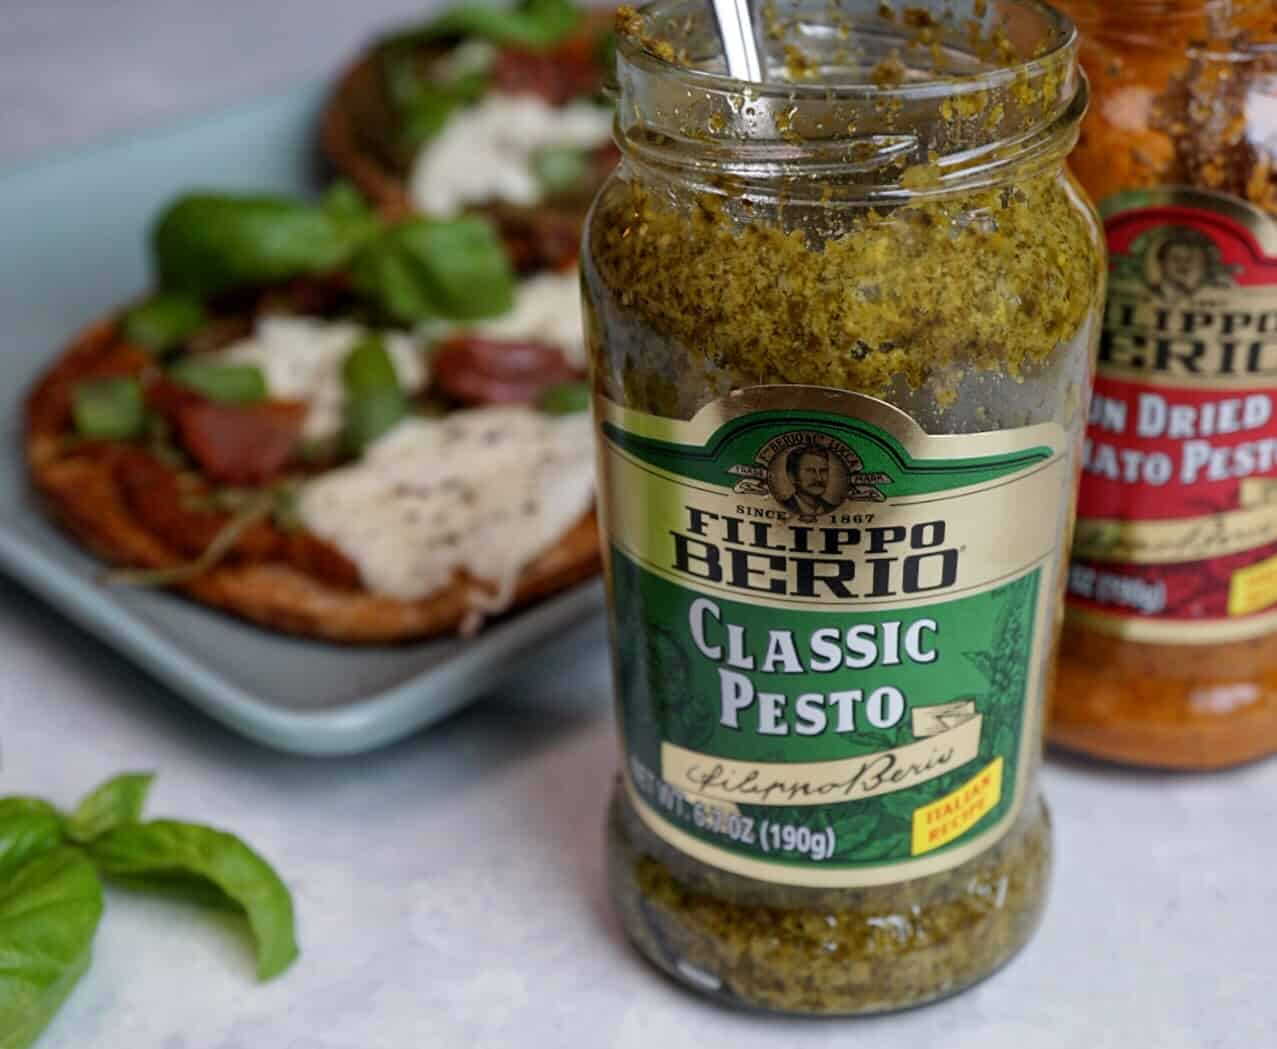 Felippo Berio Pesto with Burrata Pesto Pizzas